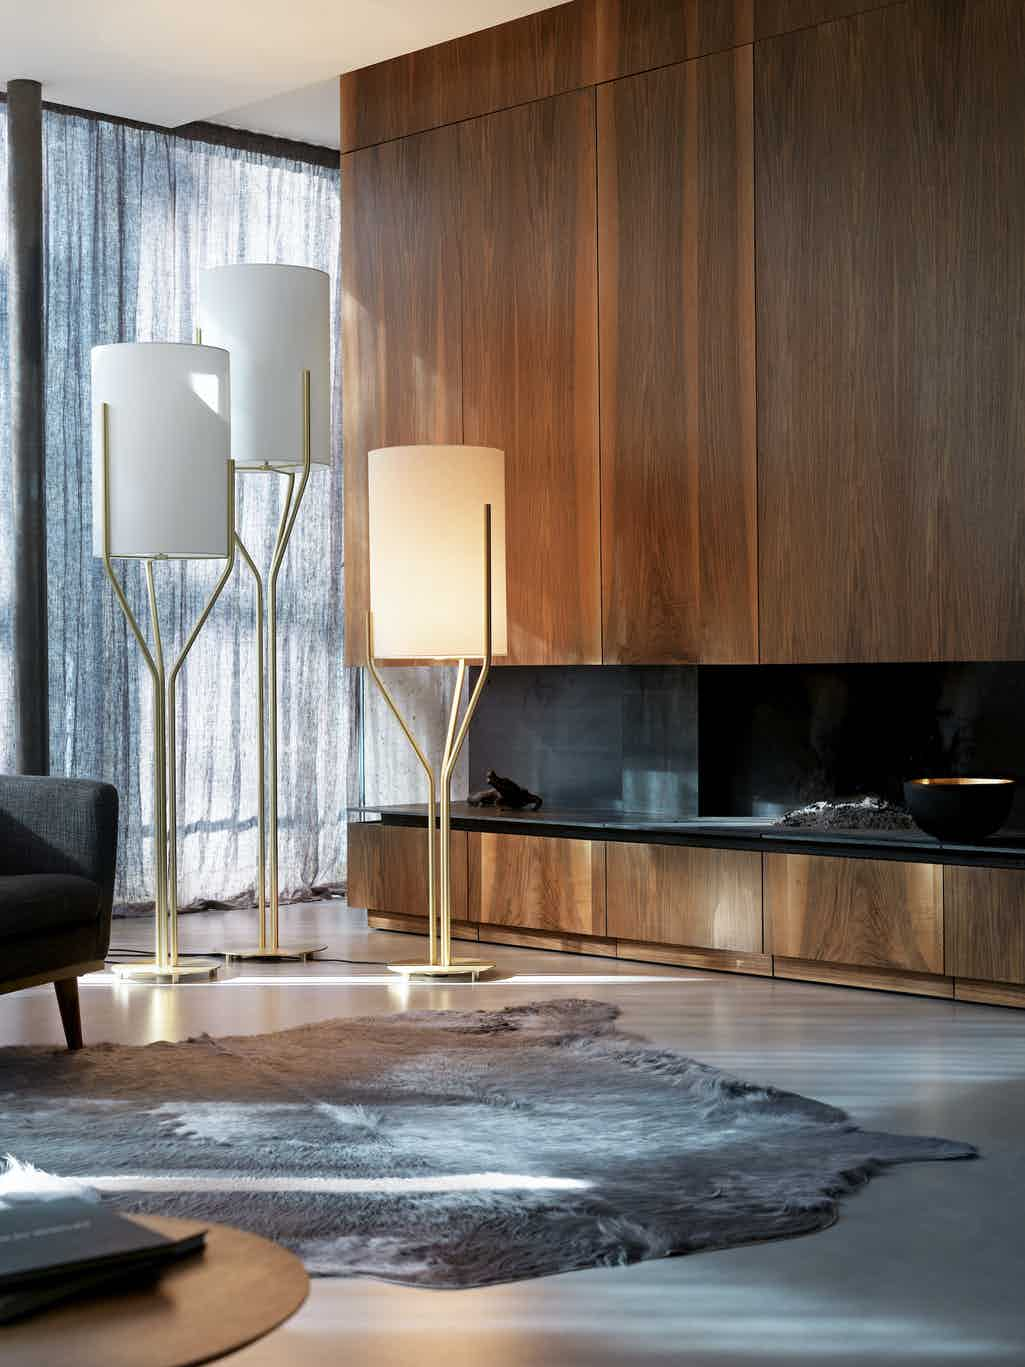 cvl luminaires arborescence lamp and more contemporary lighting at haute living